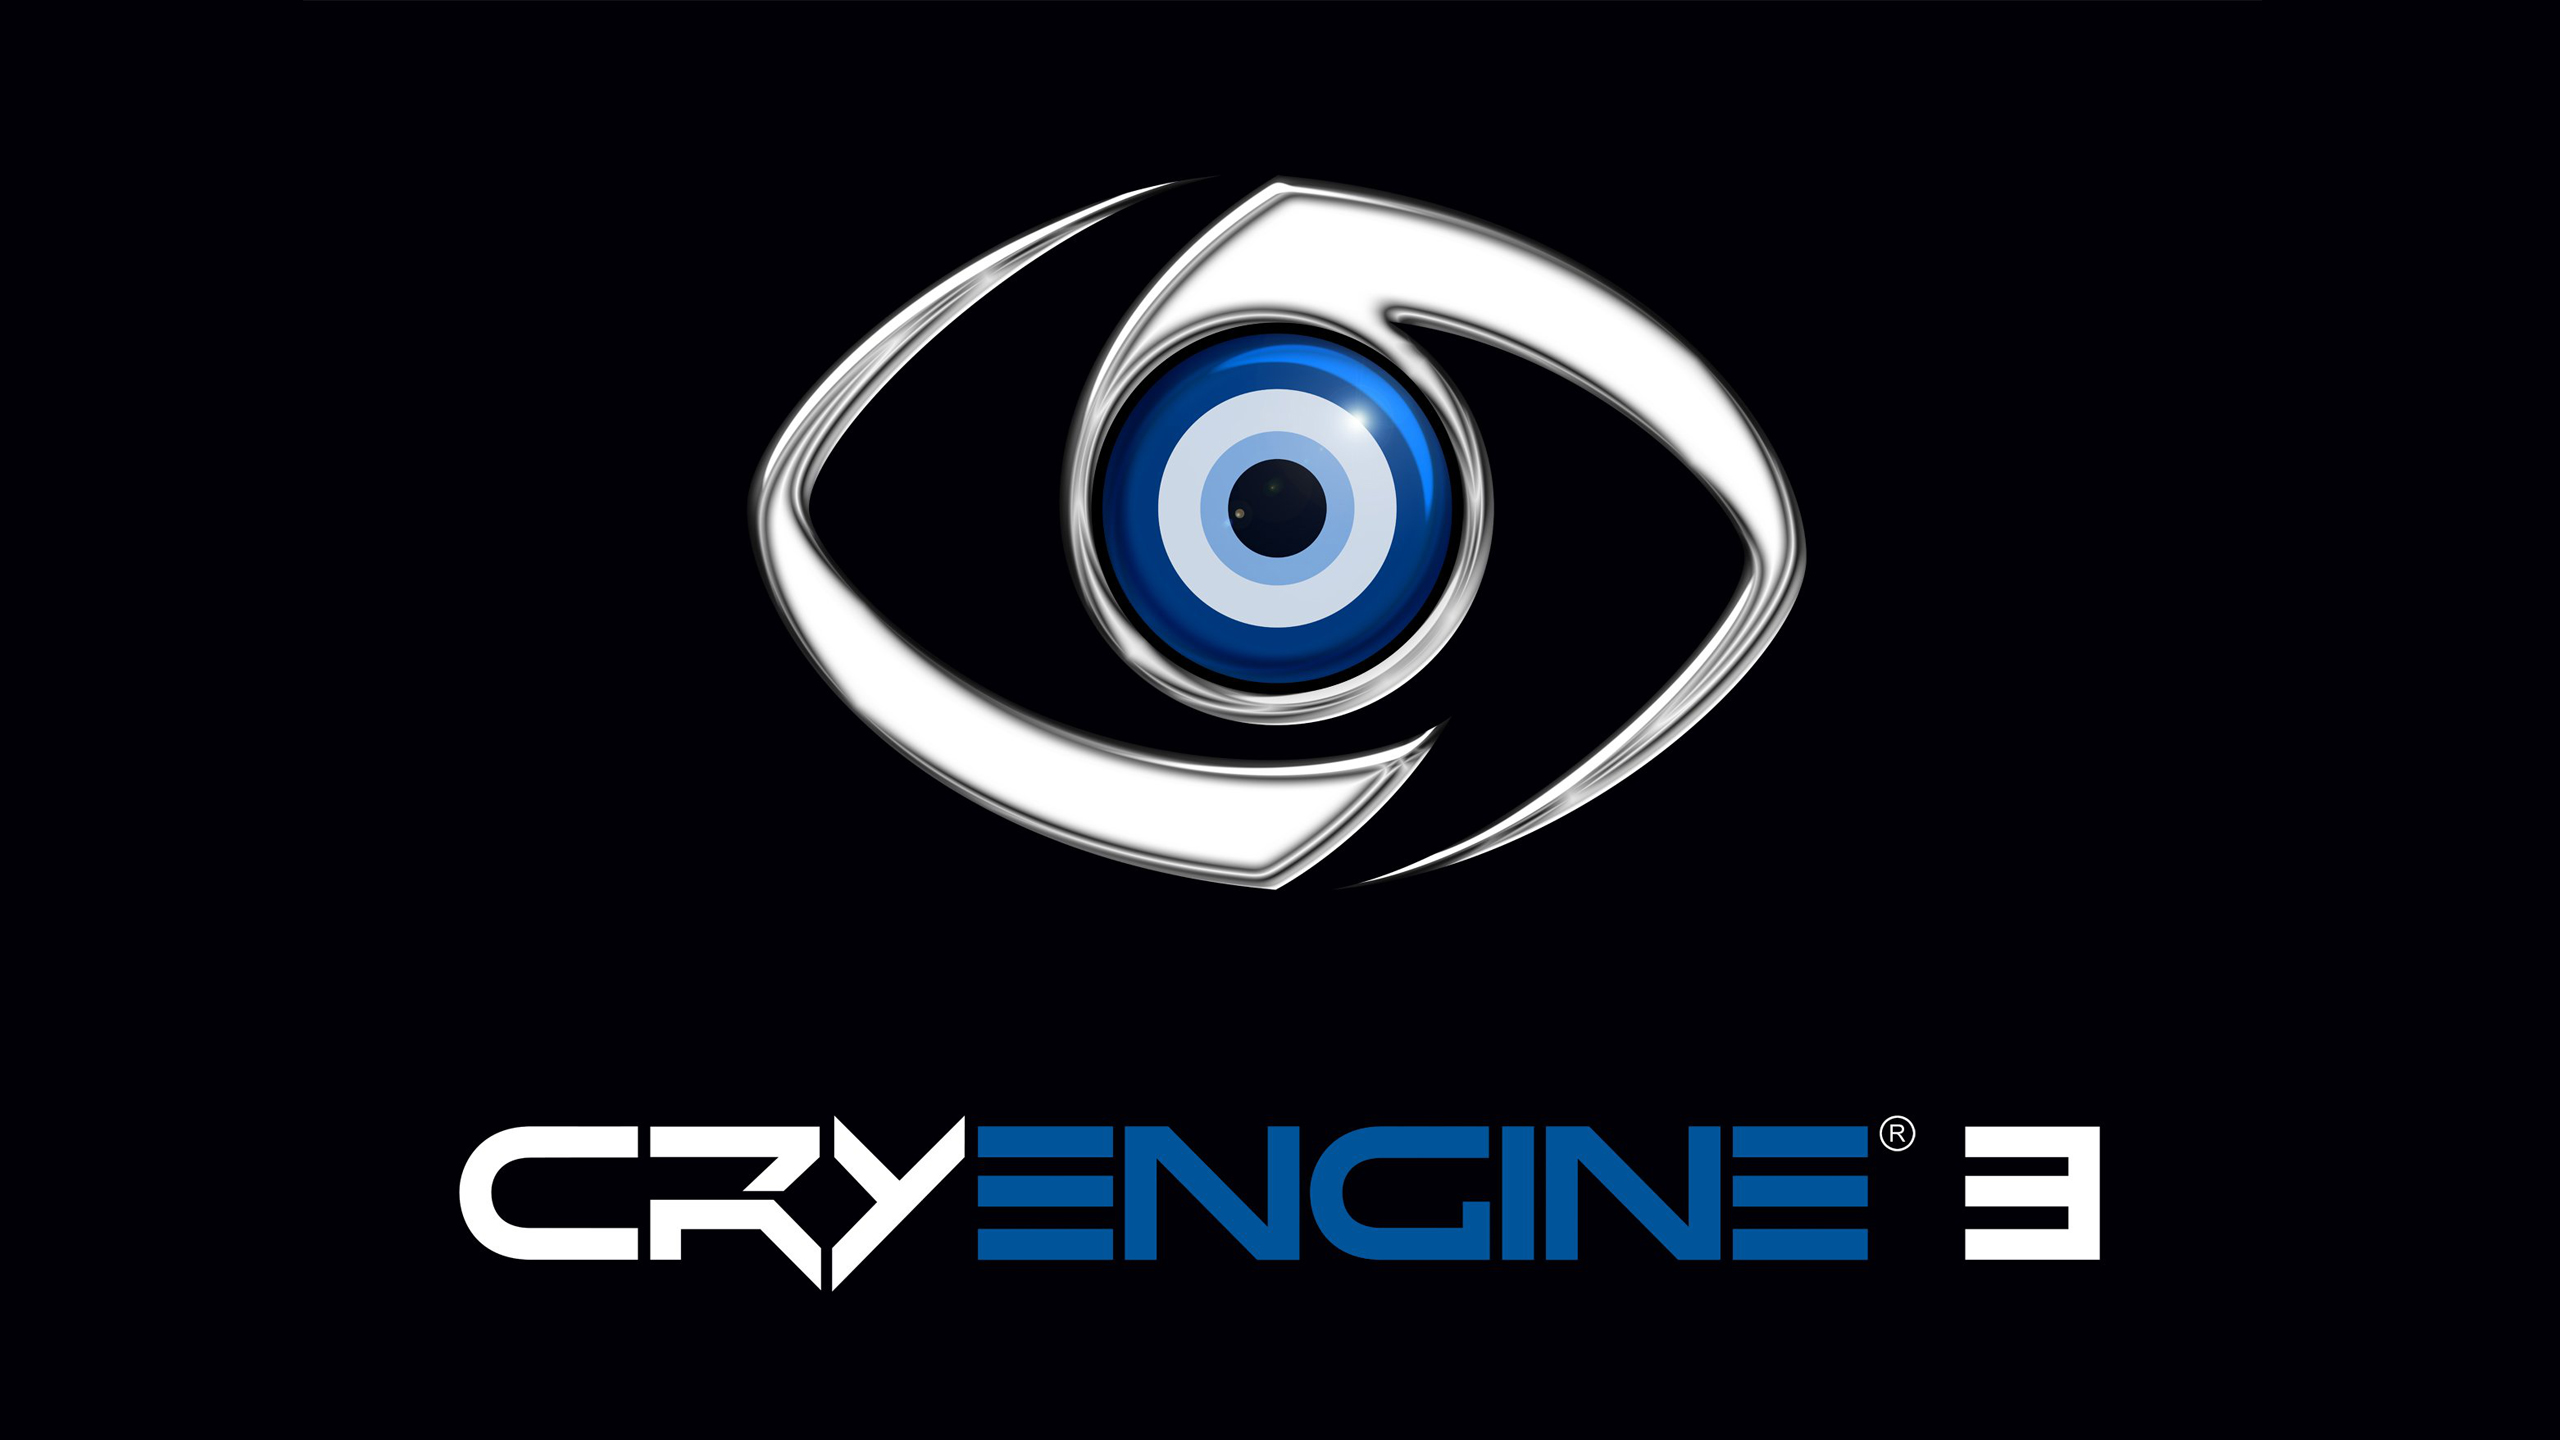 Cryengine 3 Logo wallpaper - 1012579 Cryengine 4 Logo